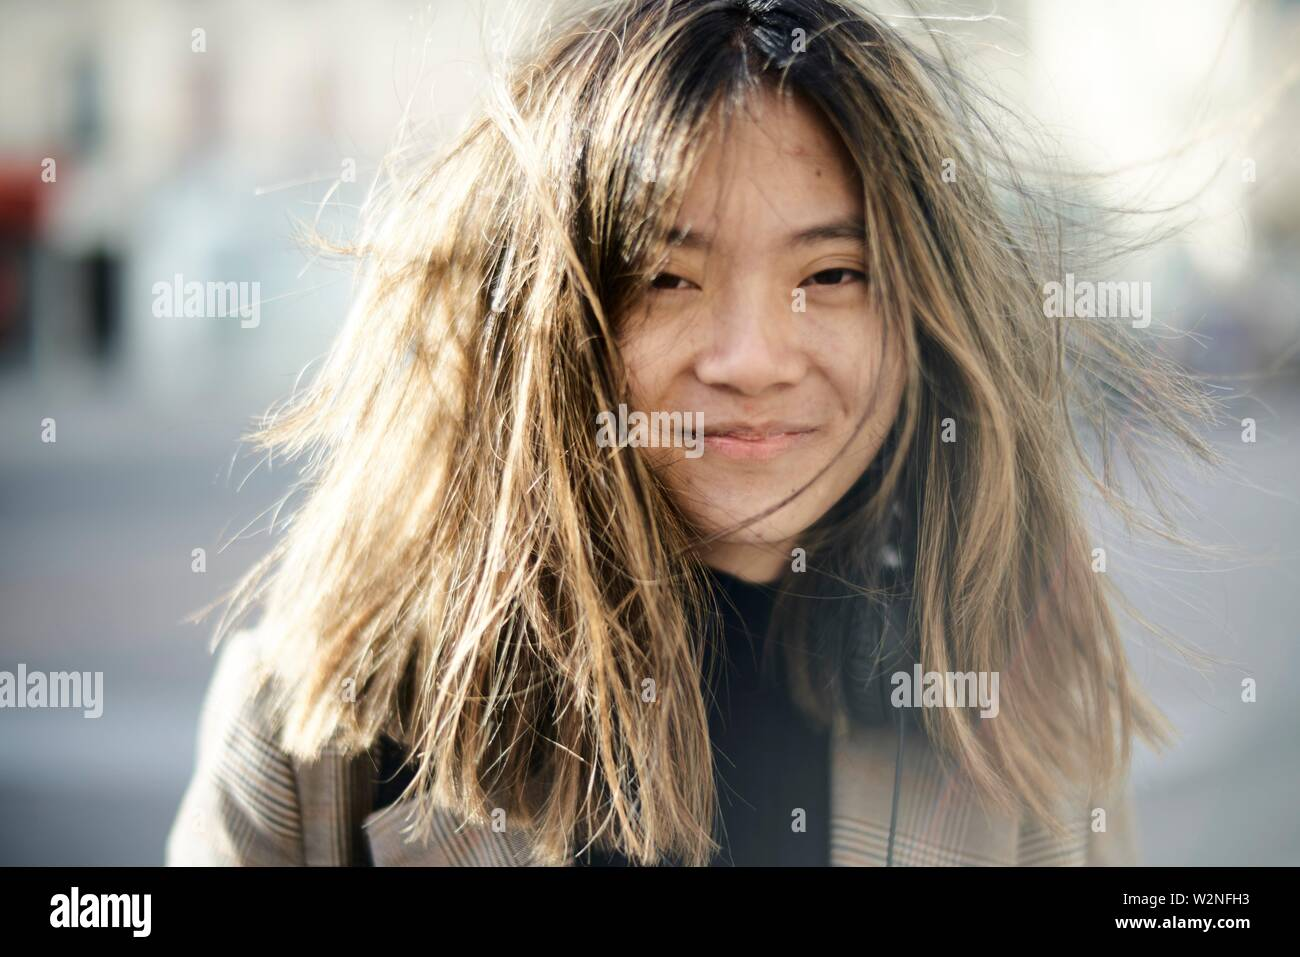 young unkempt Asian woman with tousled hairs, bad hair day, in Paris, France. - Stock Image